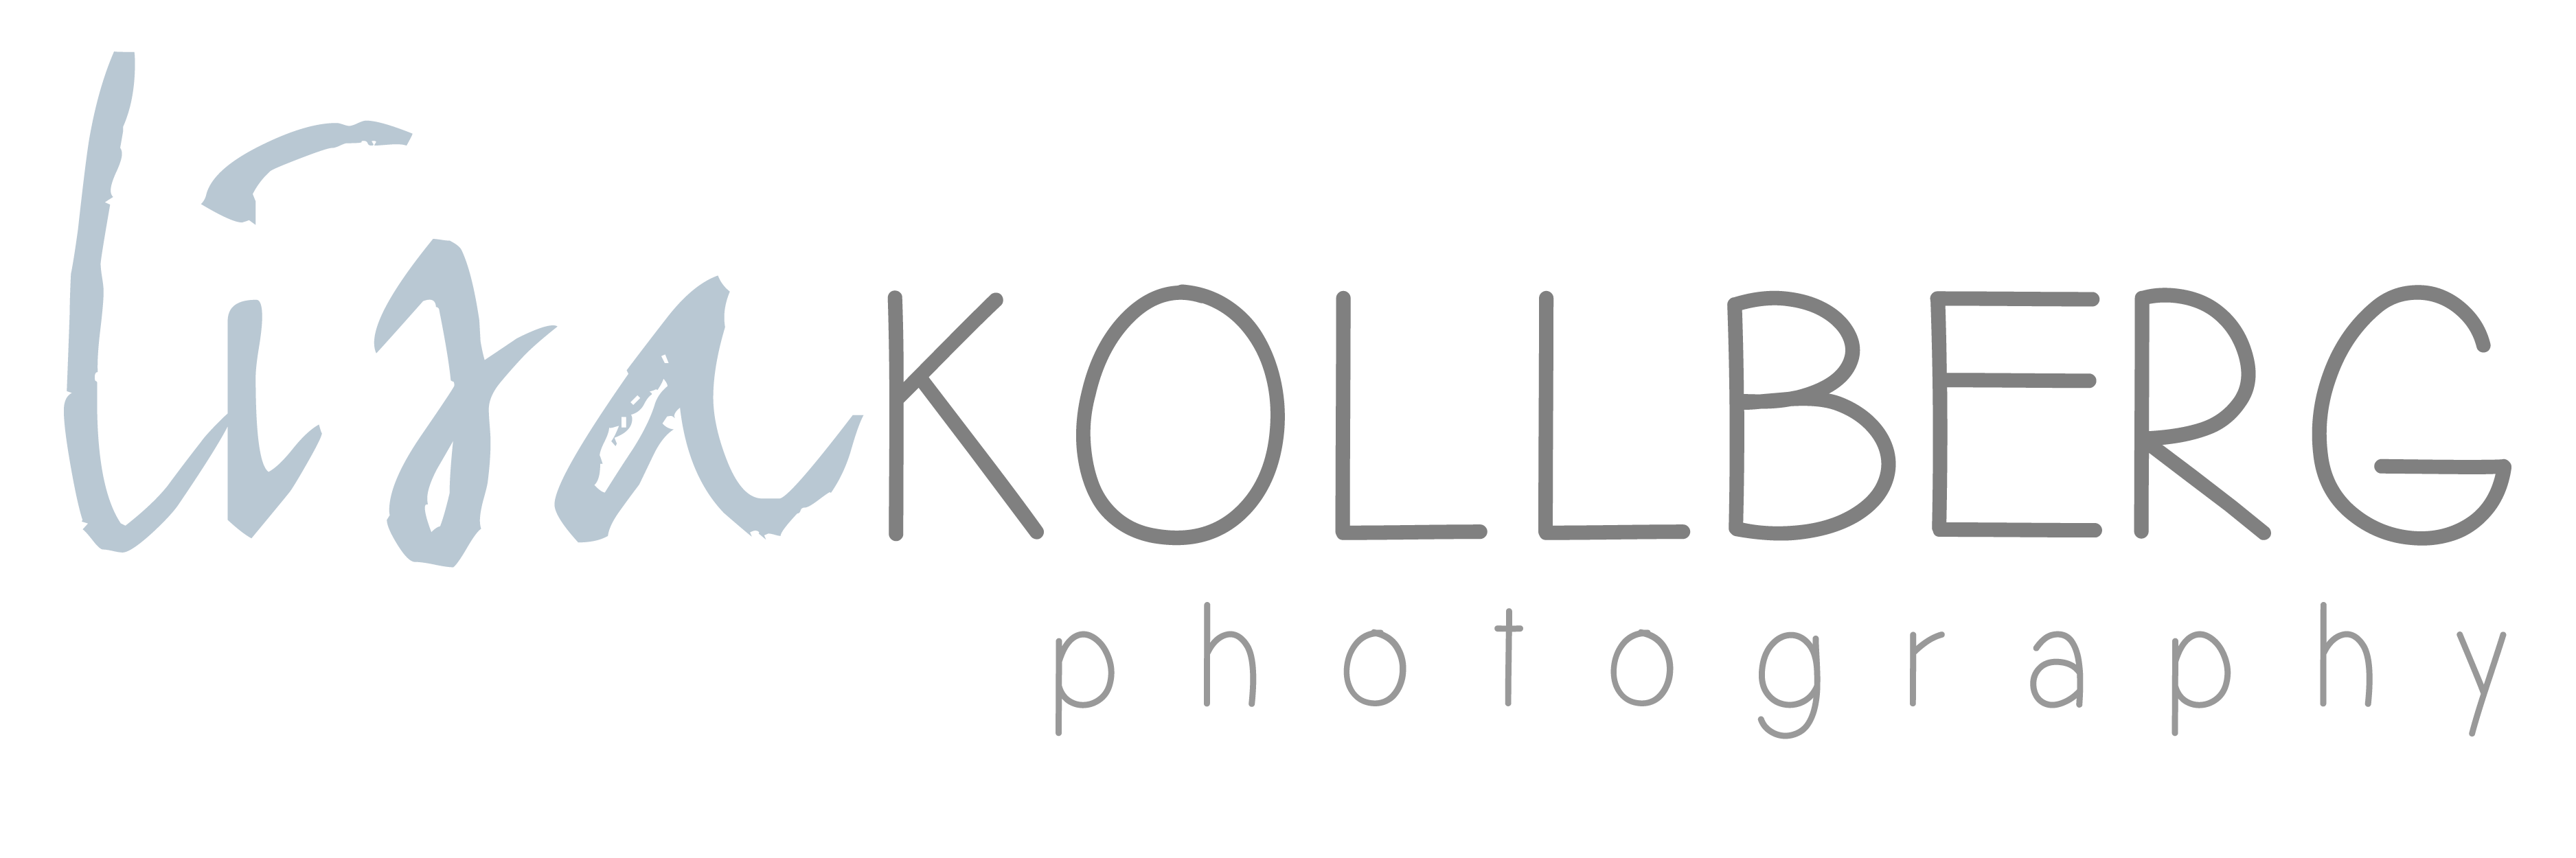 Lisa Kollbery Photography Logo